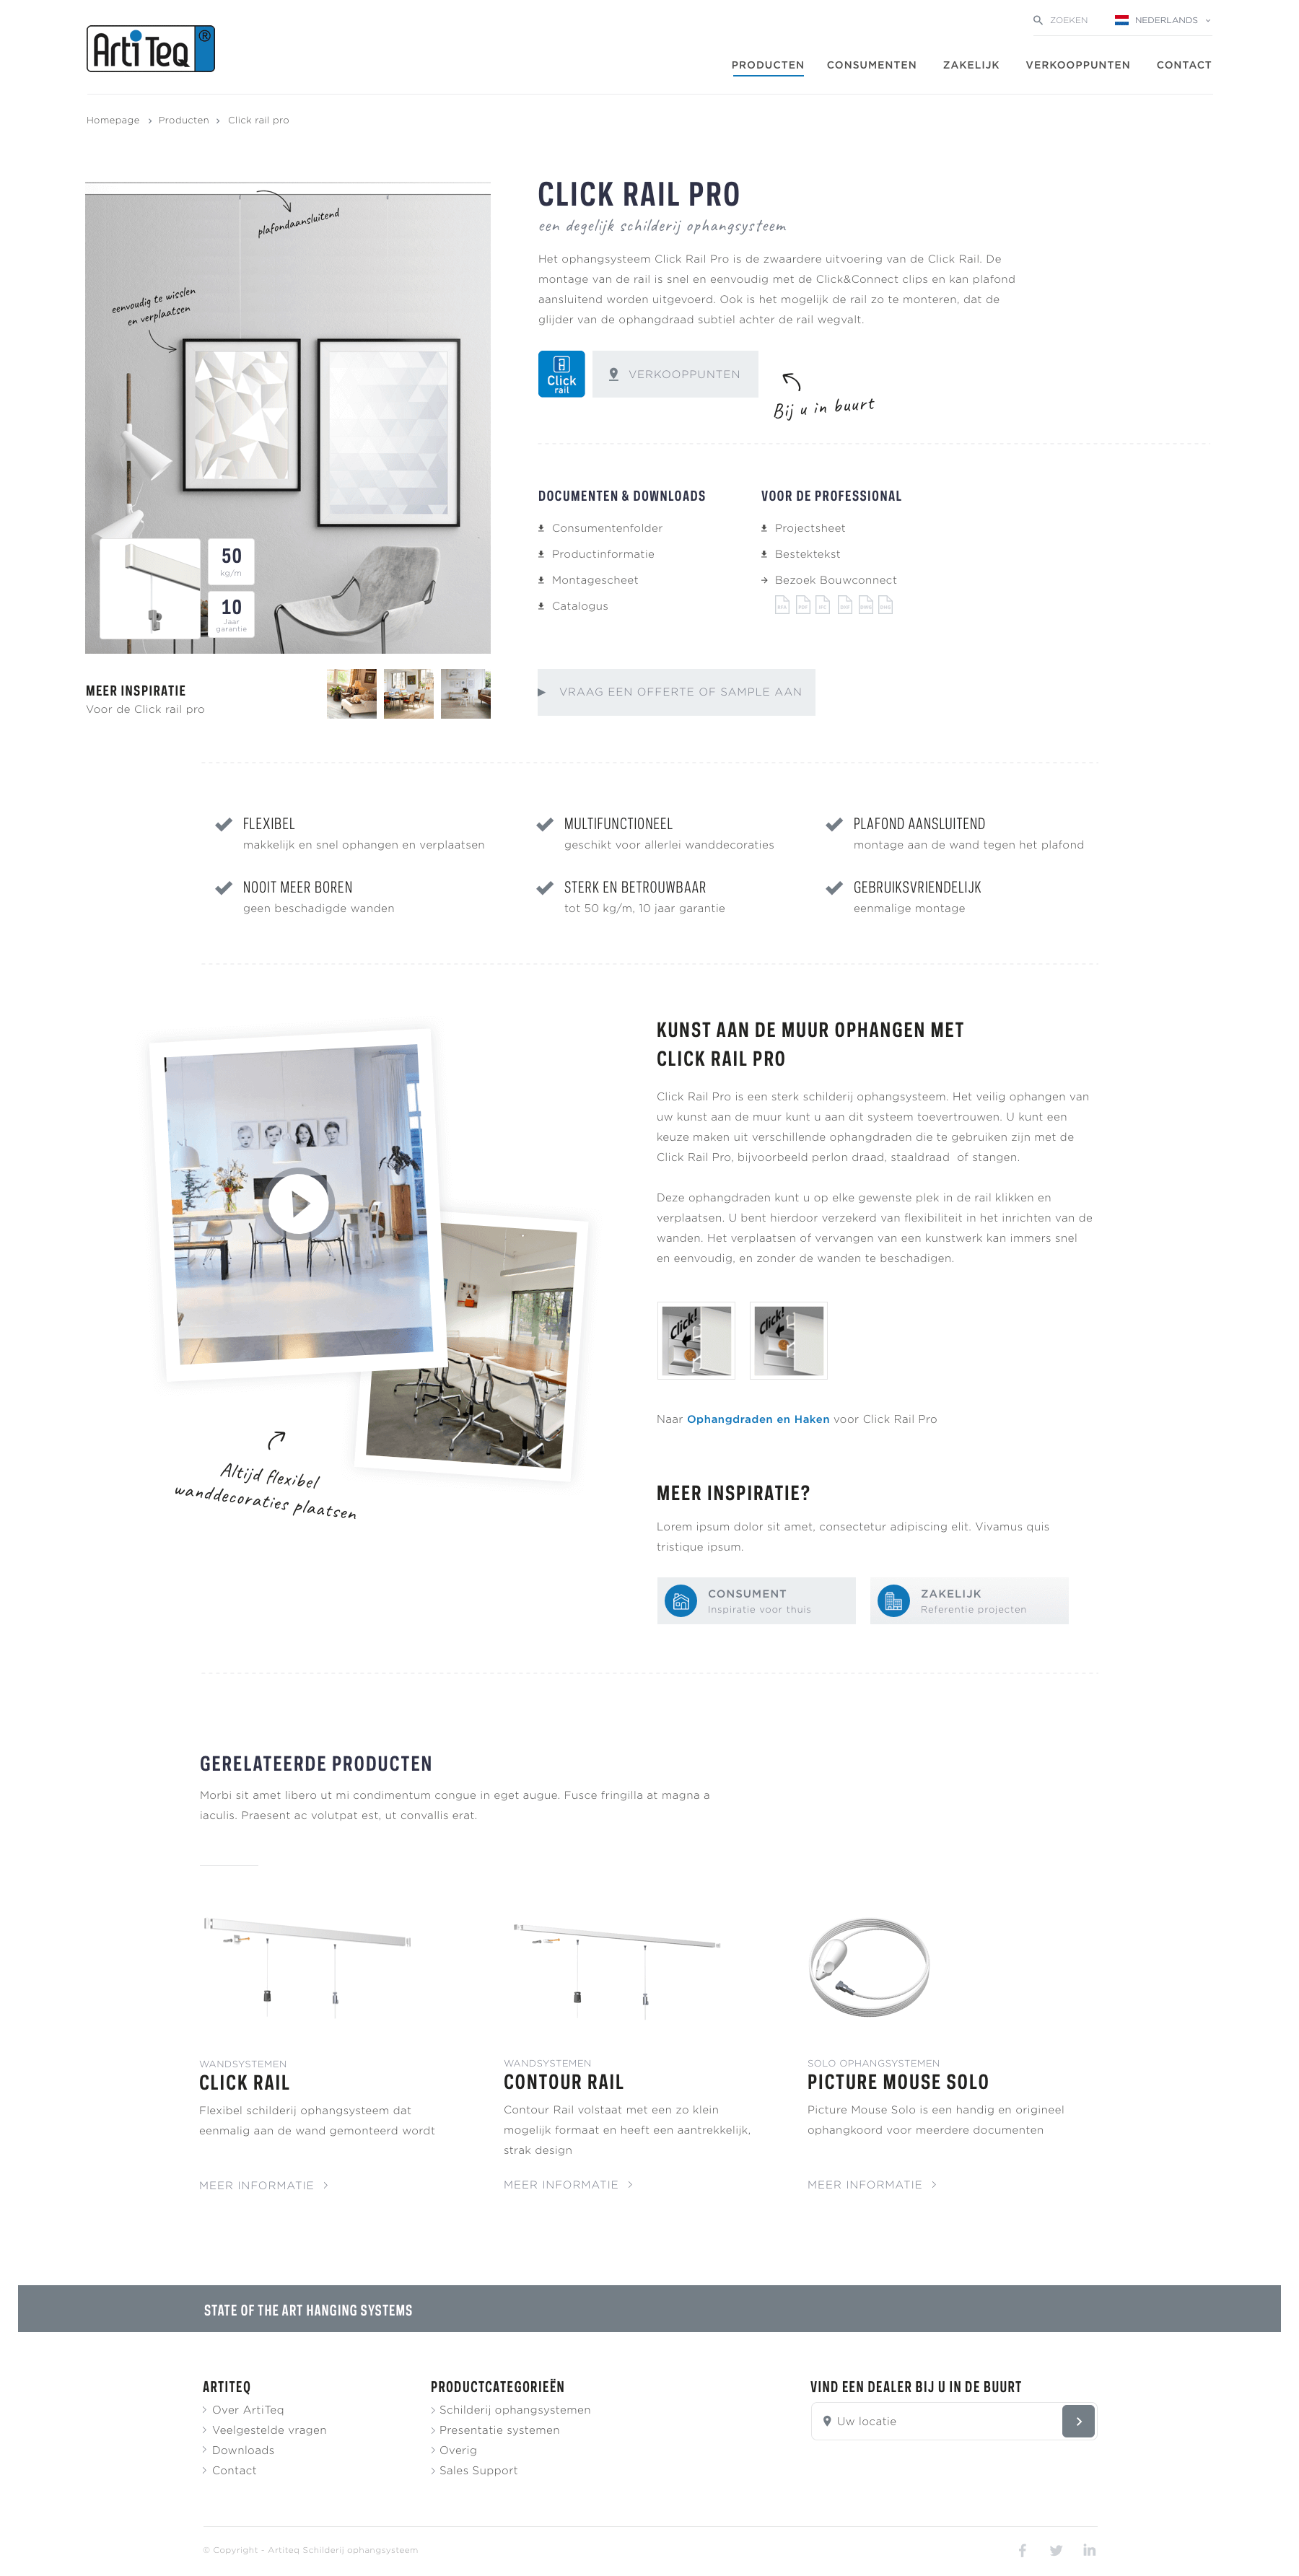 Artiteq productpage